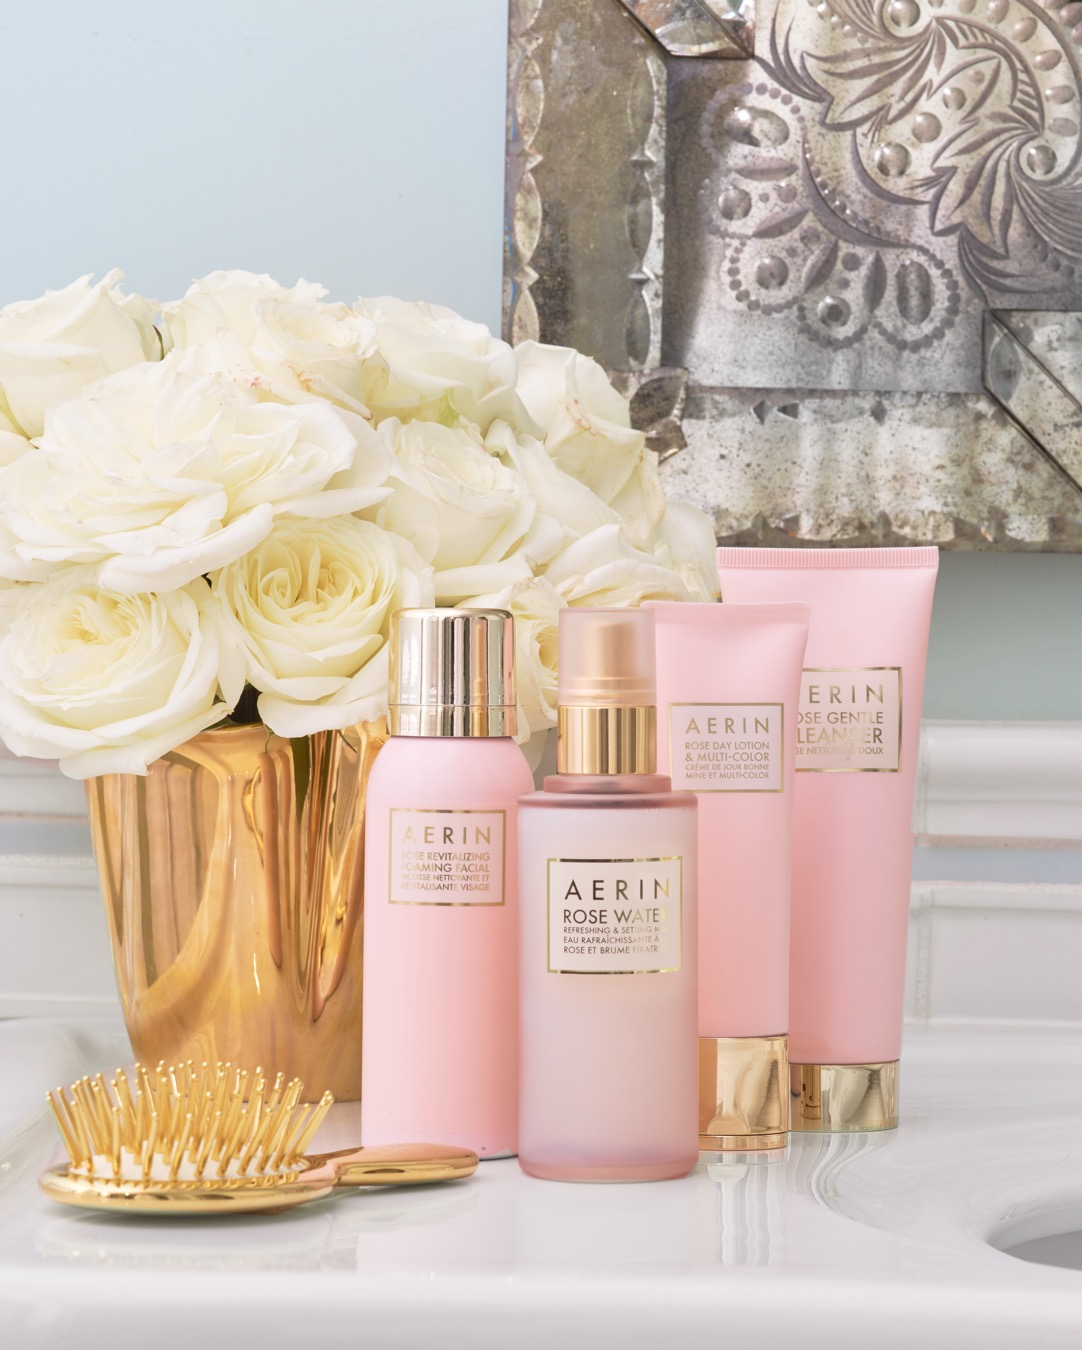 Restore and relax with the AERIN Rose Collection, a perfect addition to any beauty routine